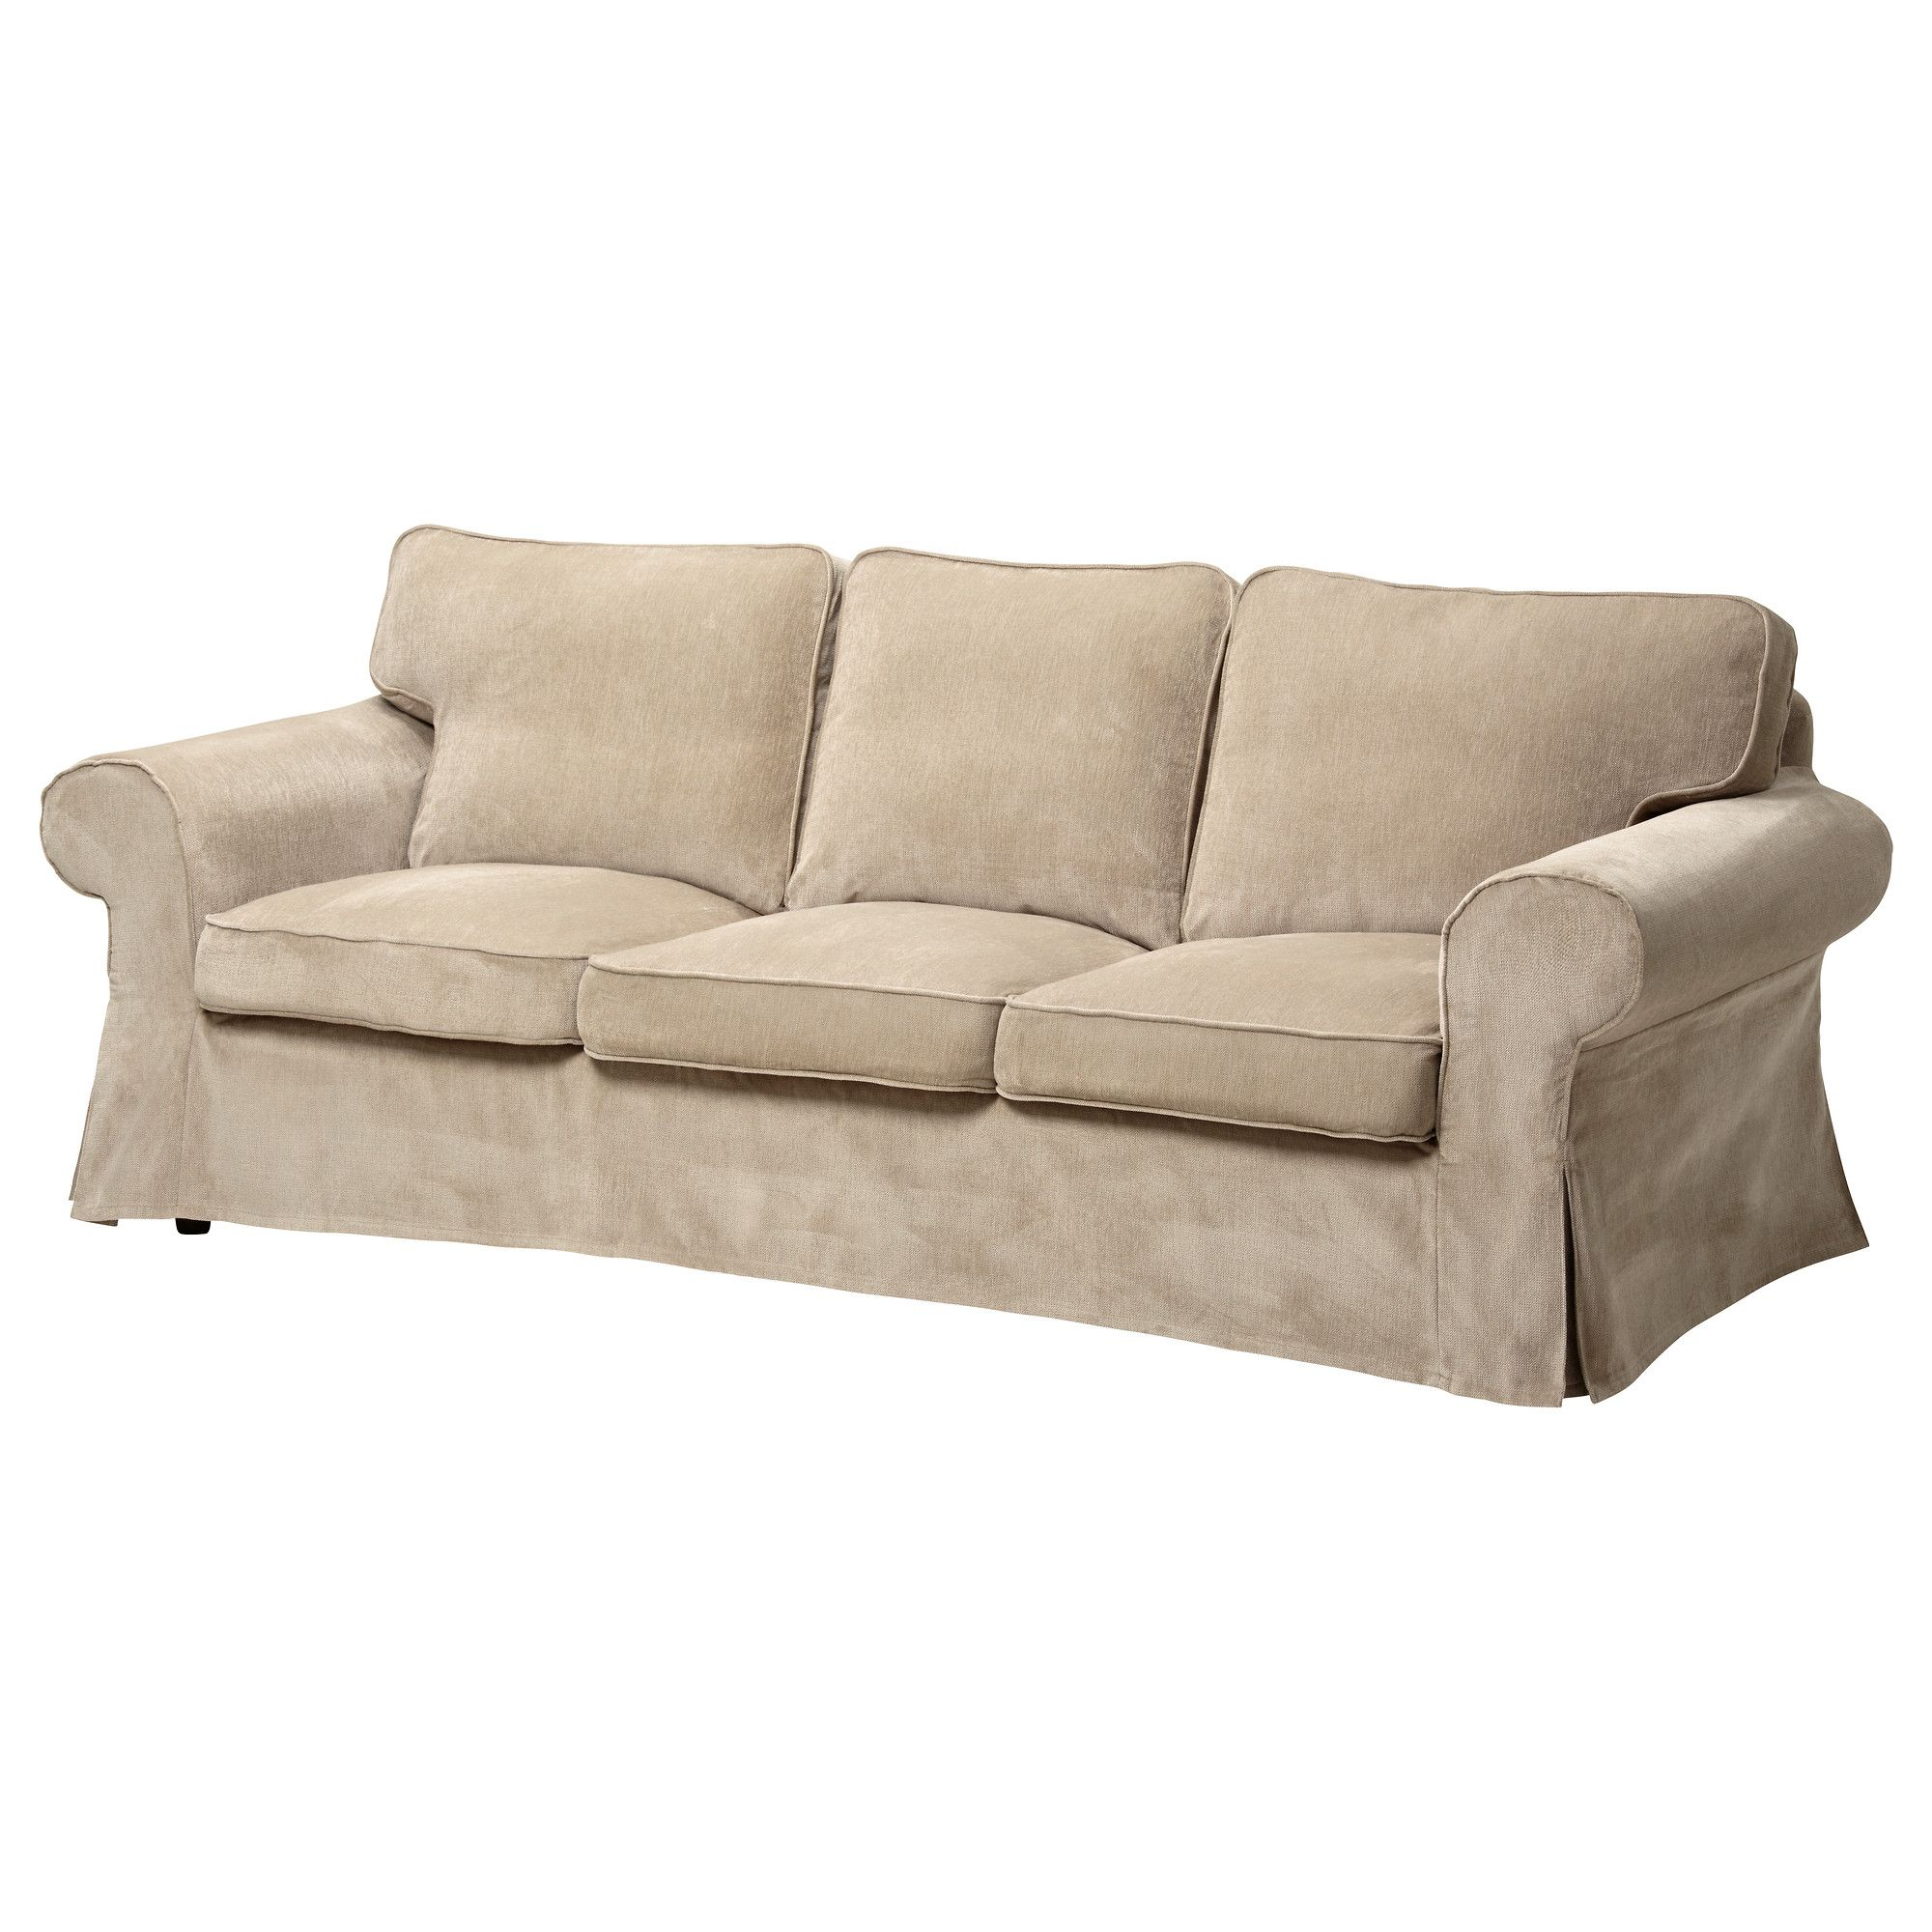 cover towards fresh loveseat terrific room slipcover slipcovers lovely ideas ikea chair magnificent covers dining furniture